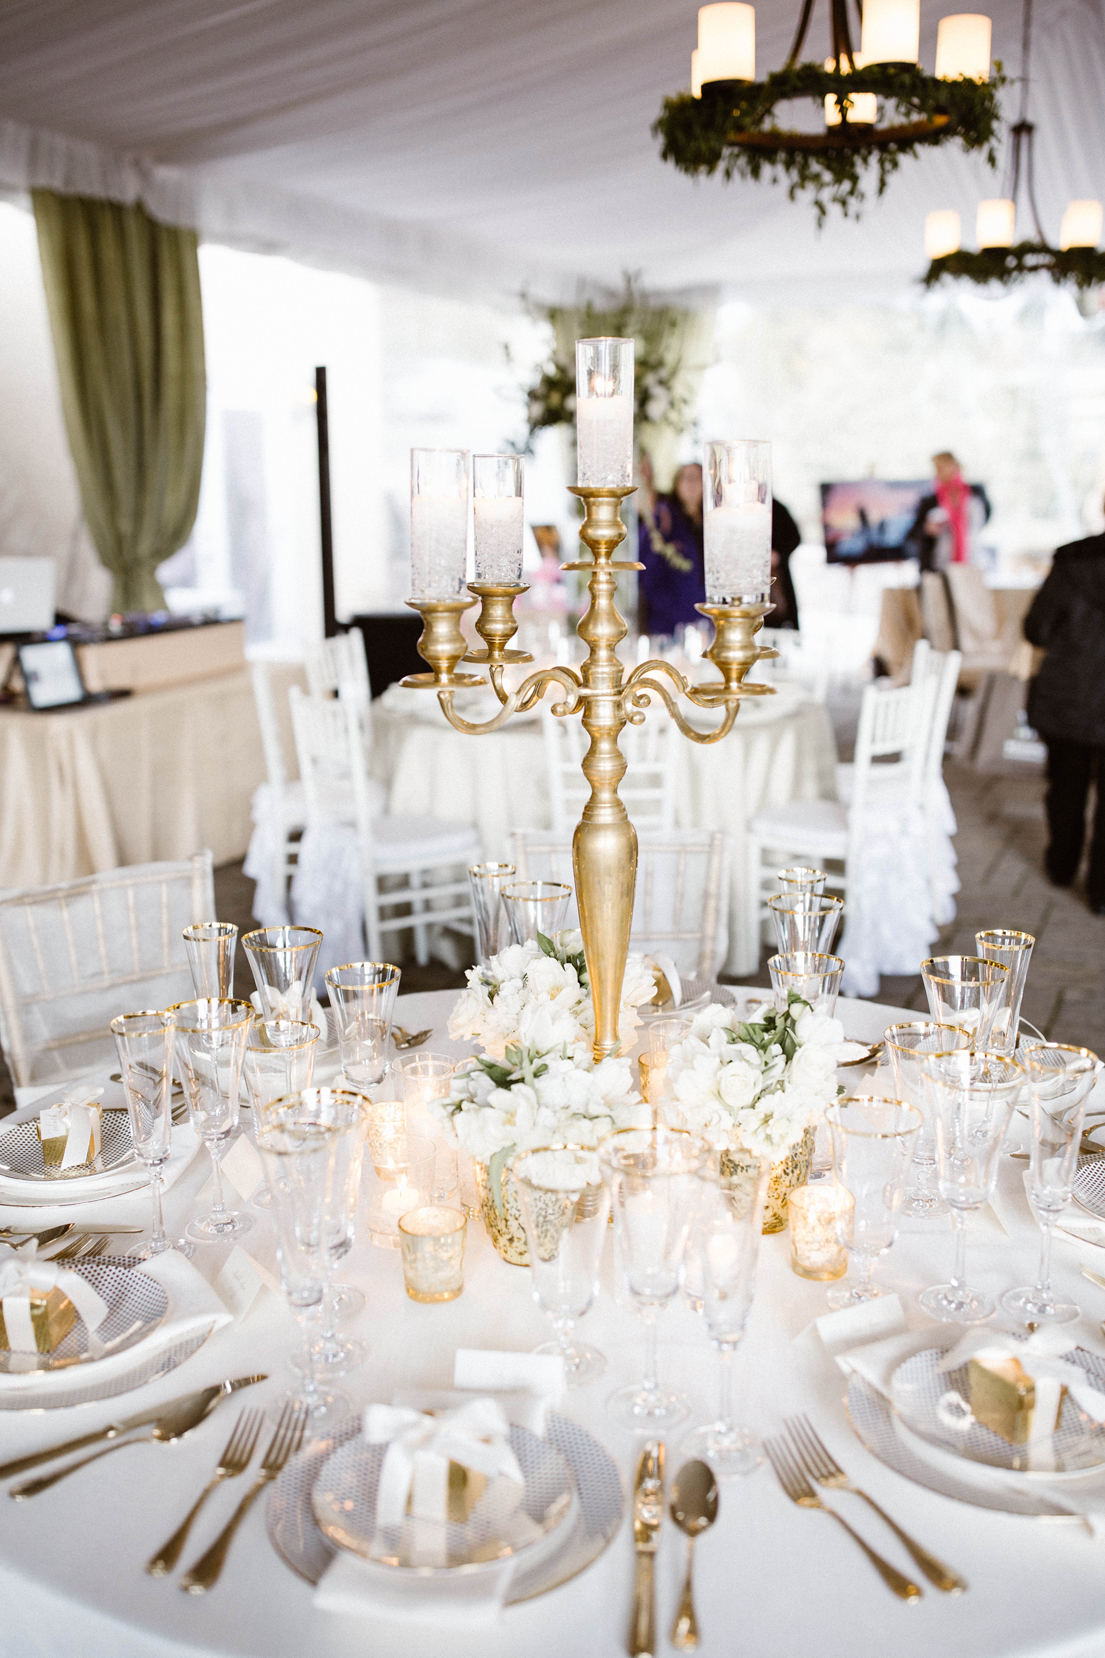 DeLille+Cellars_The+Chateau_Woodinville_2017_Weddings+In+Woodinville114.jpg